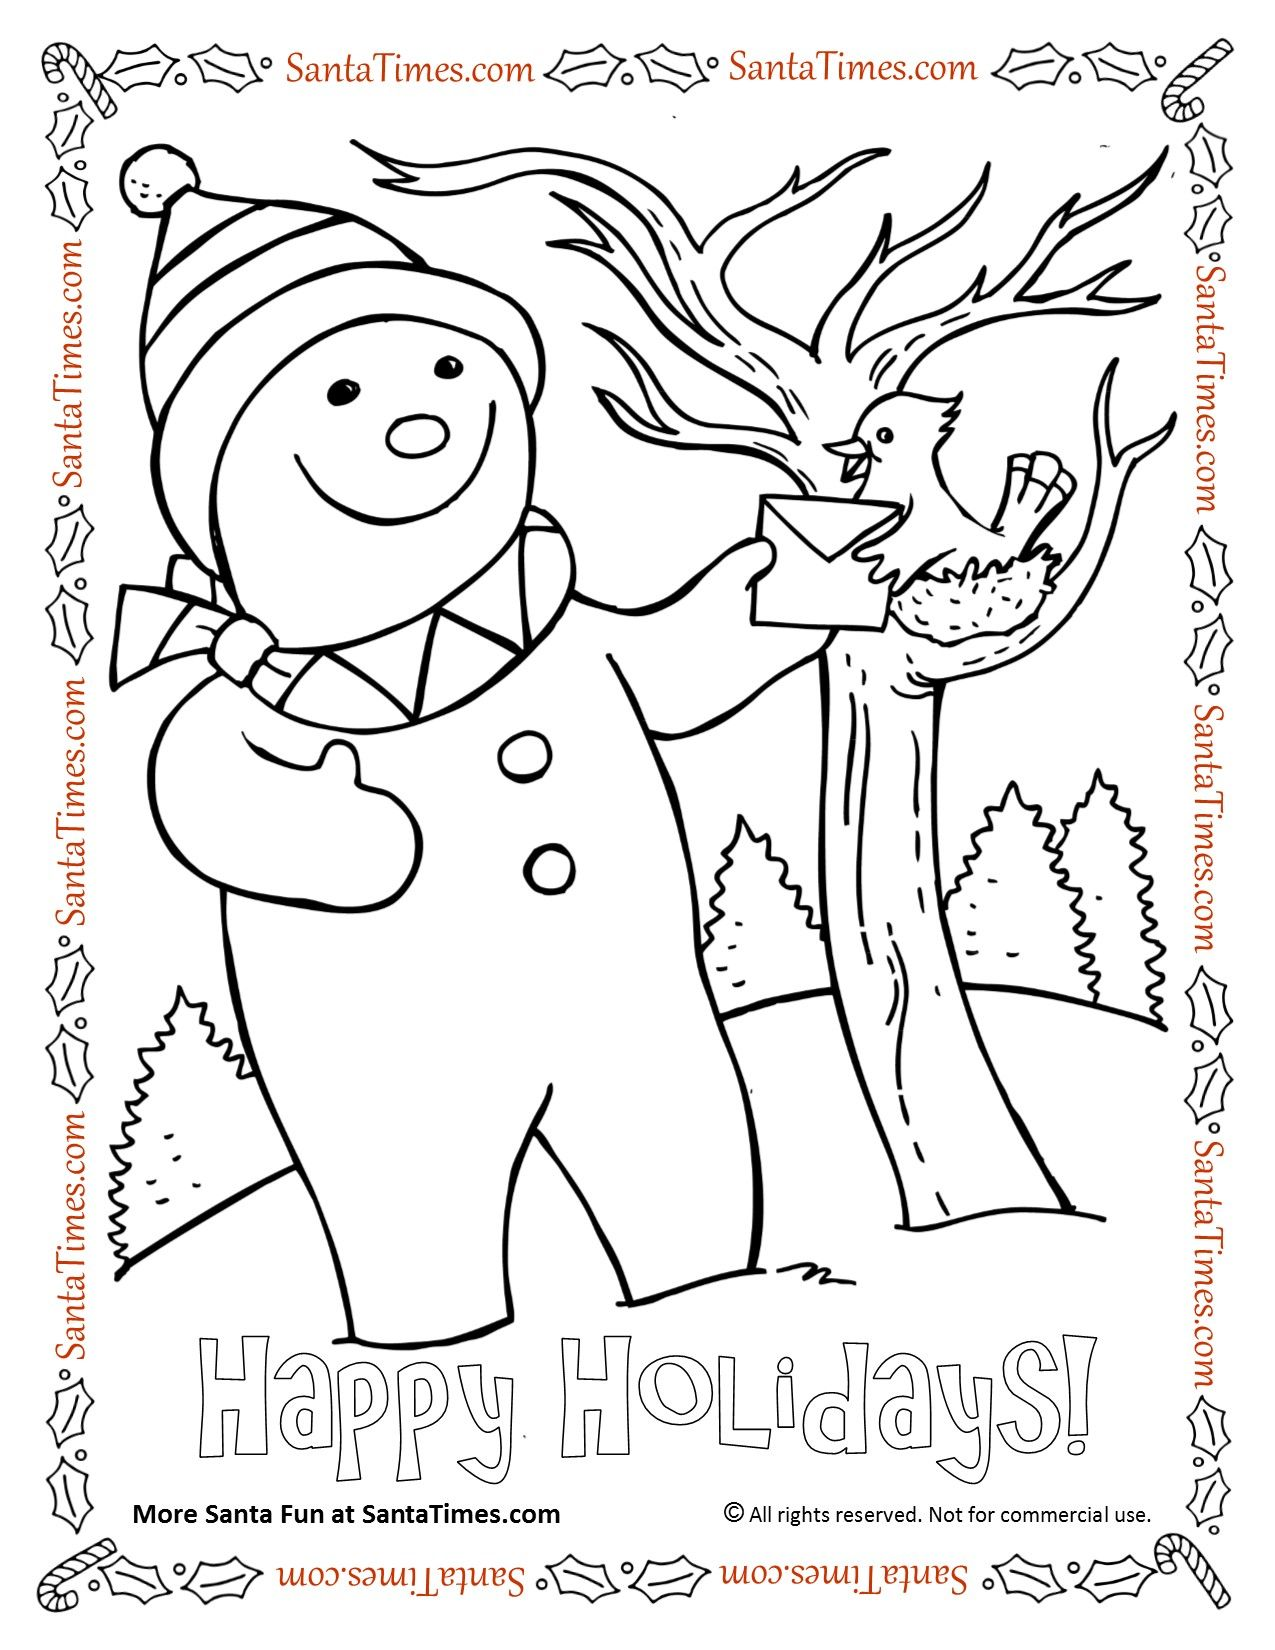 Happy Holiday Bird And Snowman Coloring Page Snowman Coloring Pages Bird Coloring Pages Christmas Coloring Pages